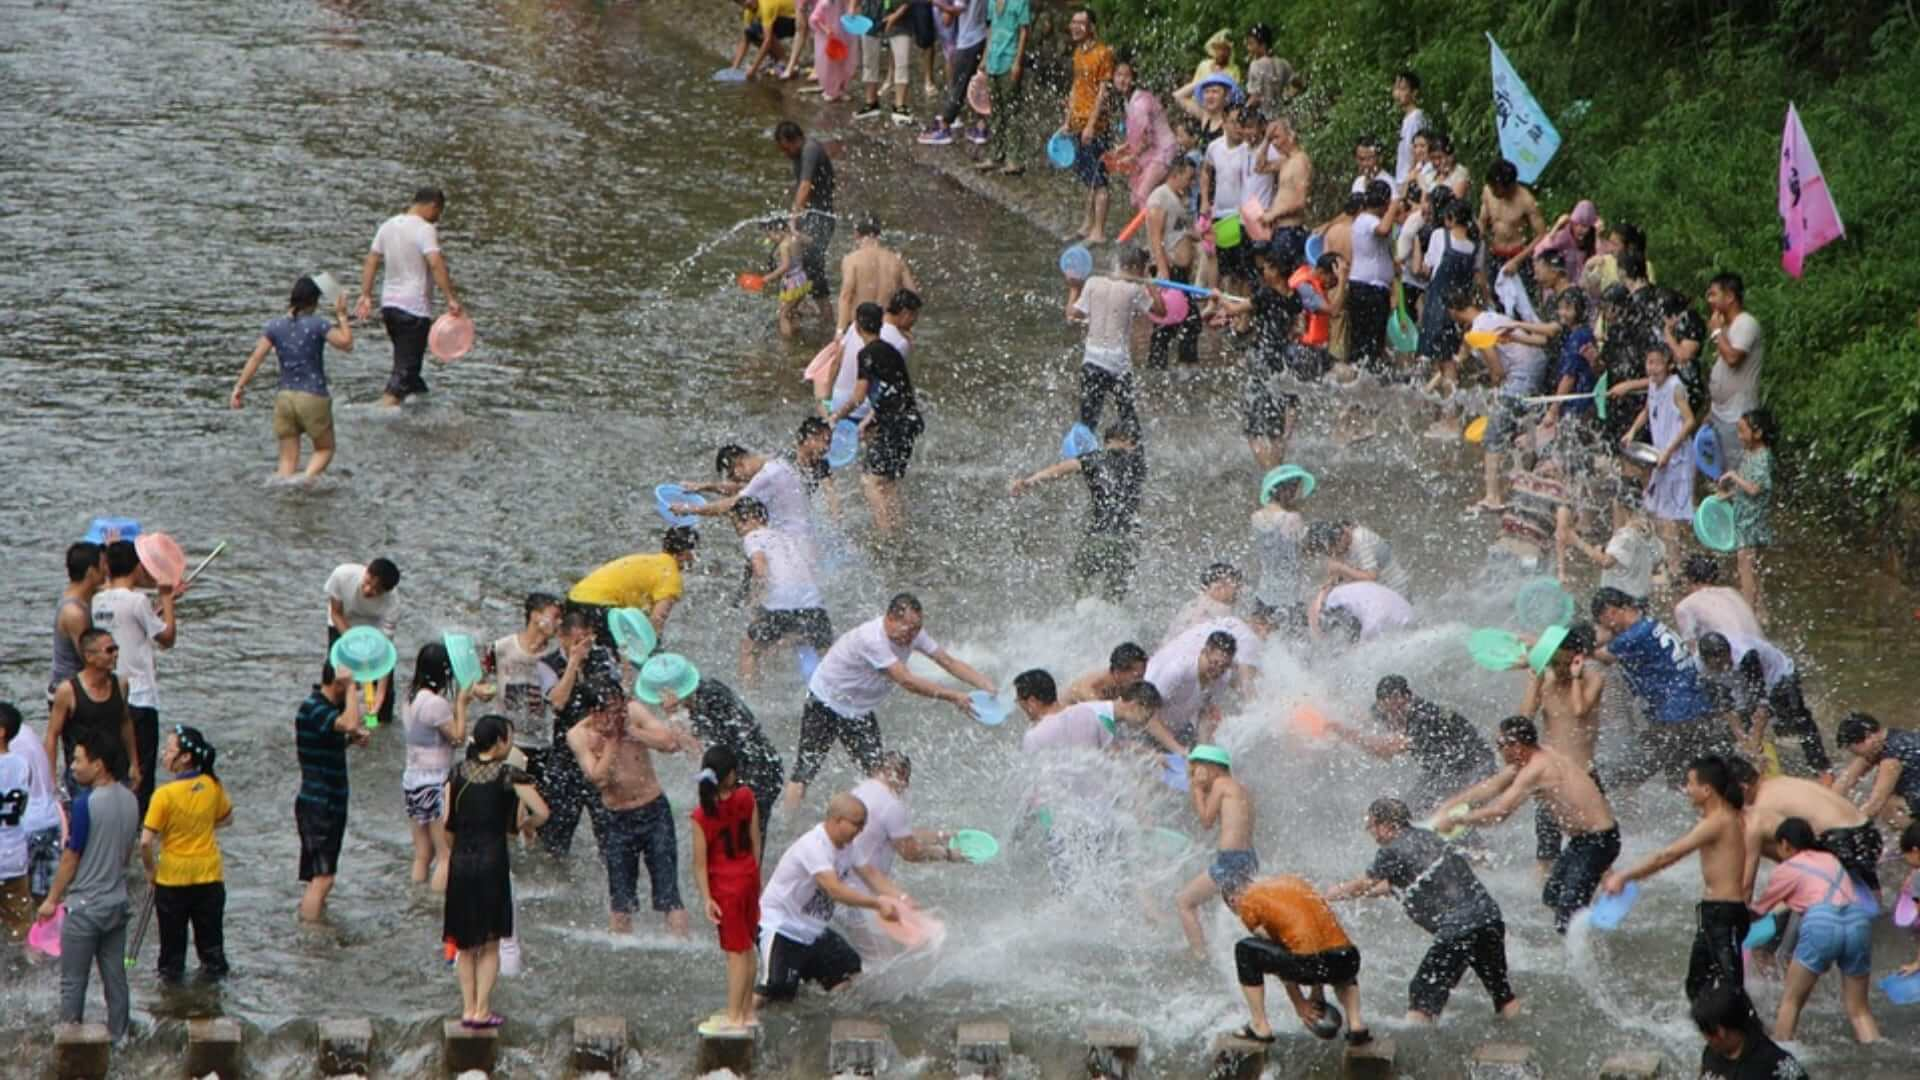 Many people are standing in a river during a water fight in Thailand.